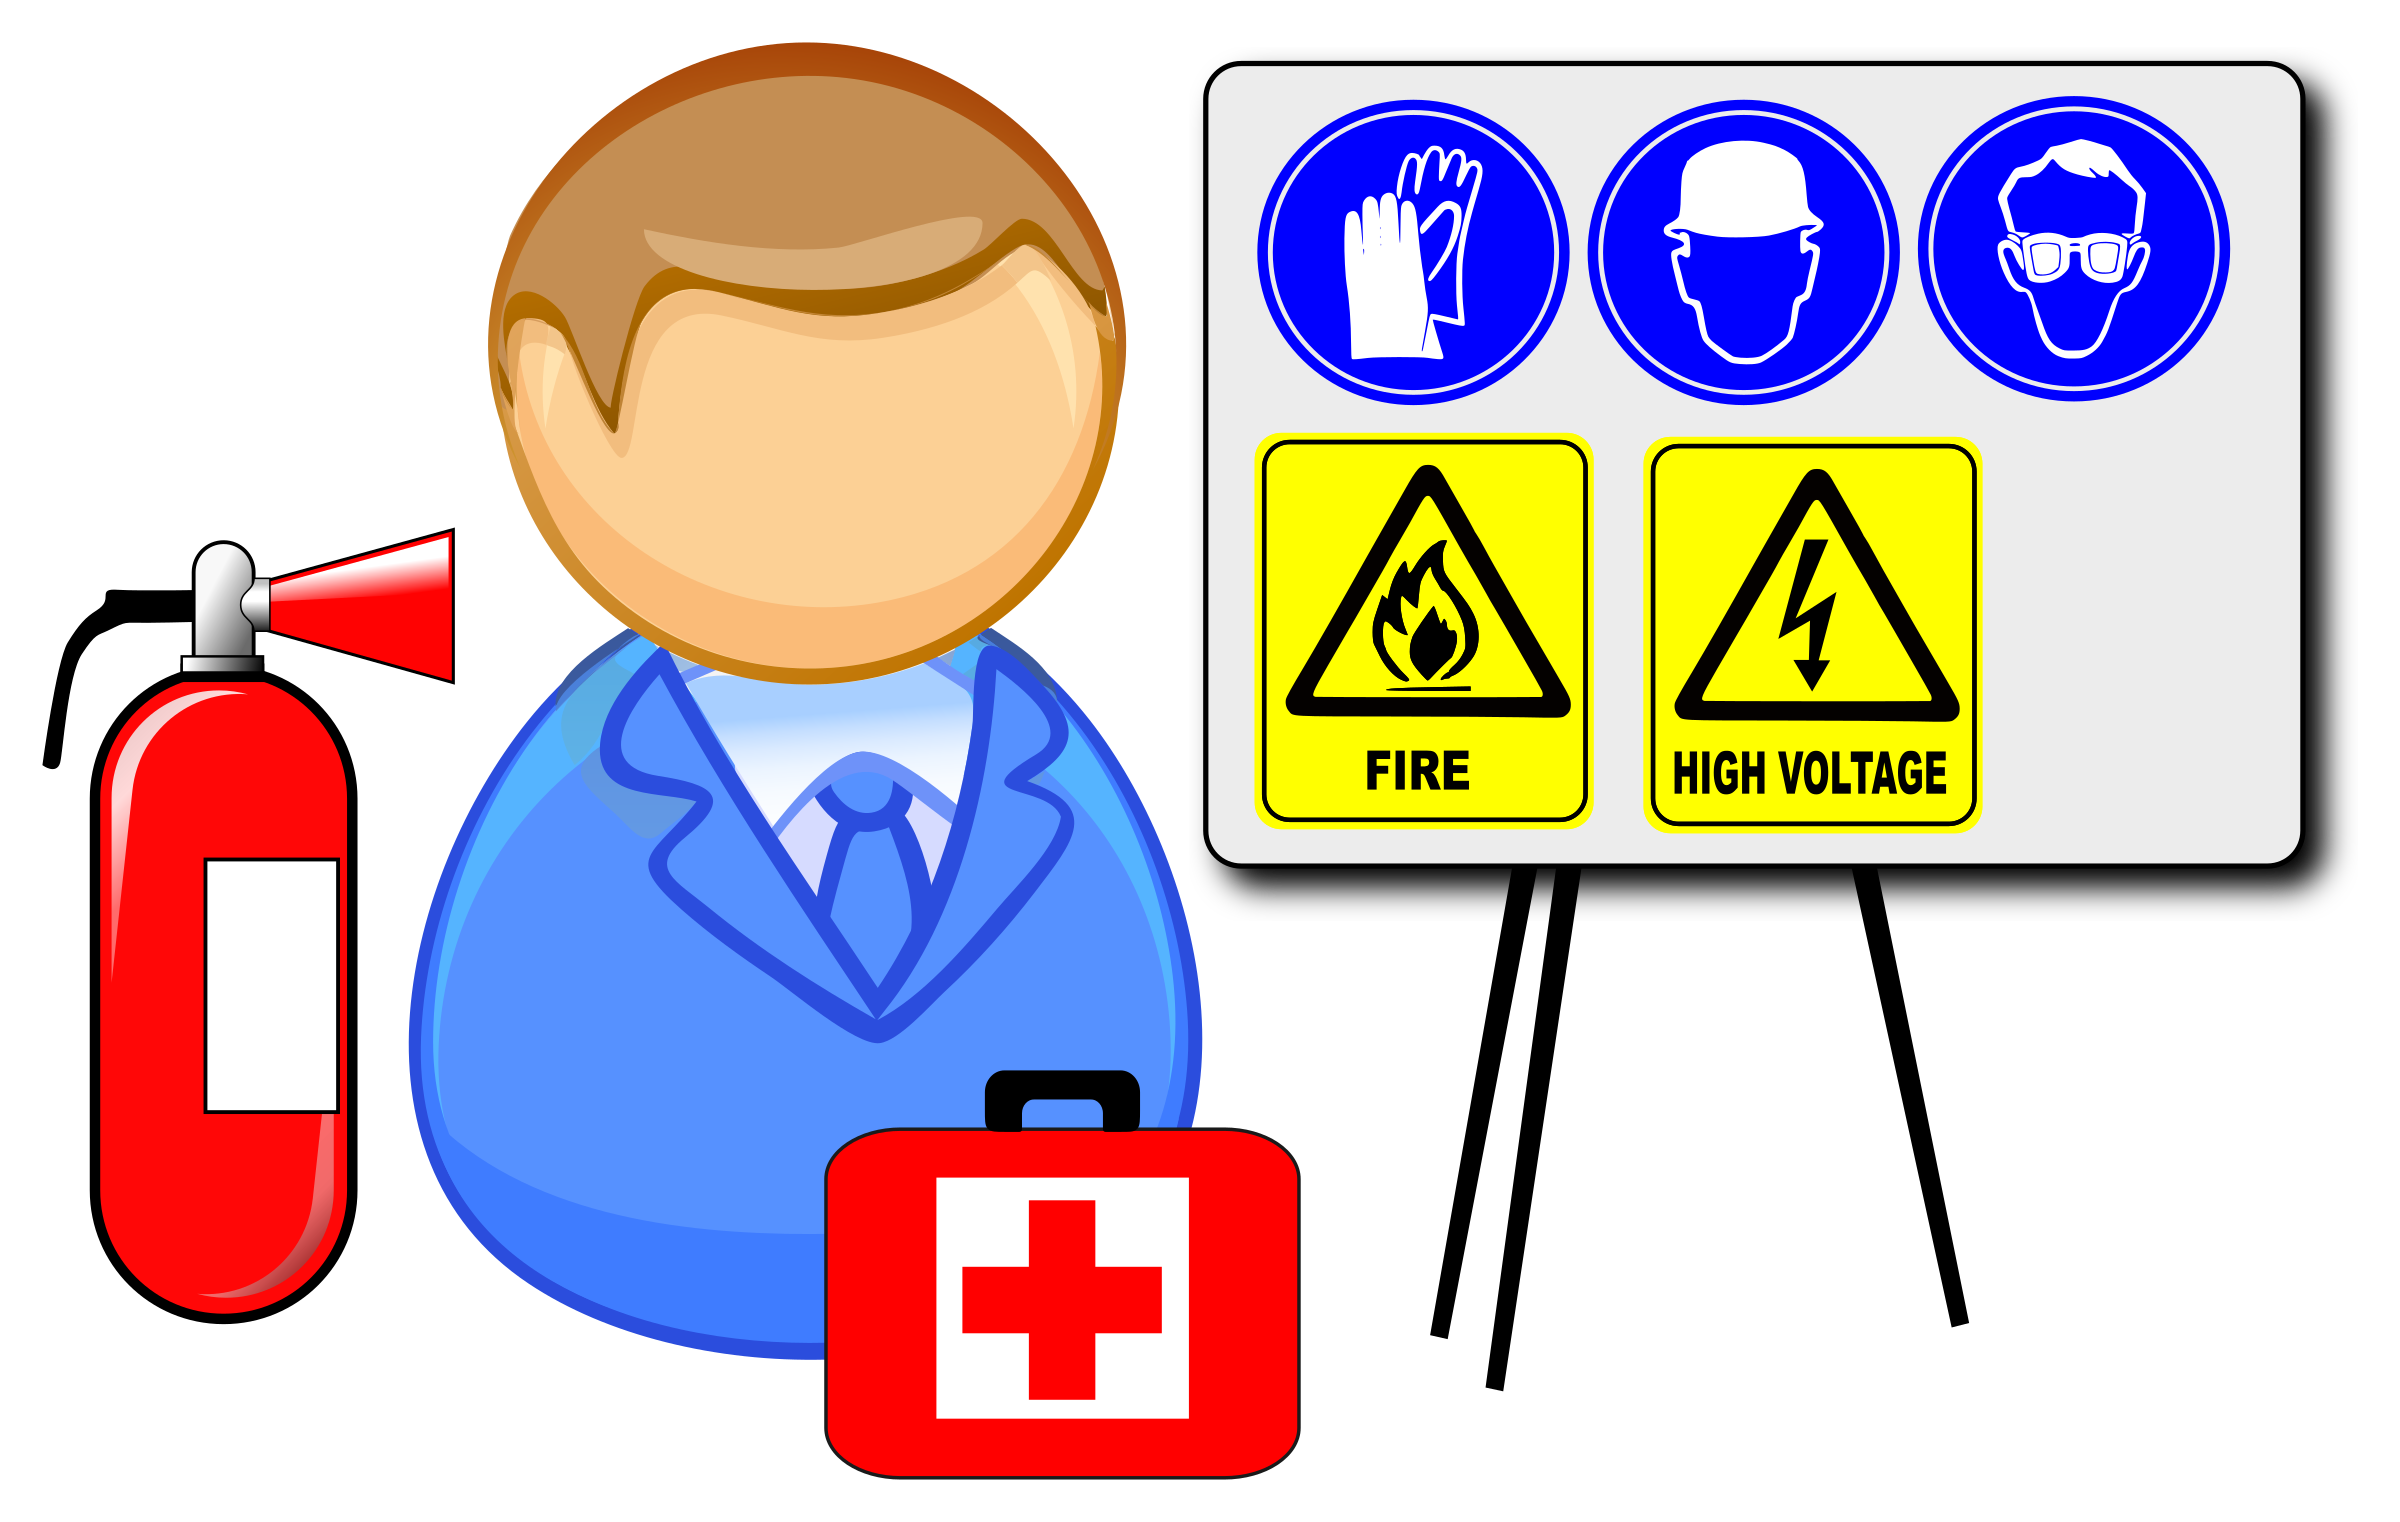 Health and safety clipart clipart images gallery for free download.